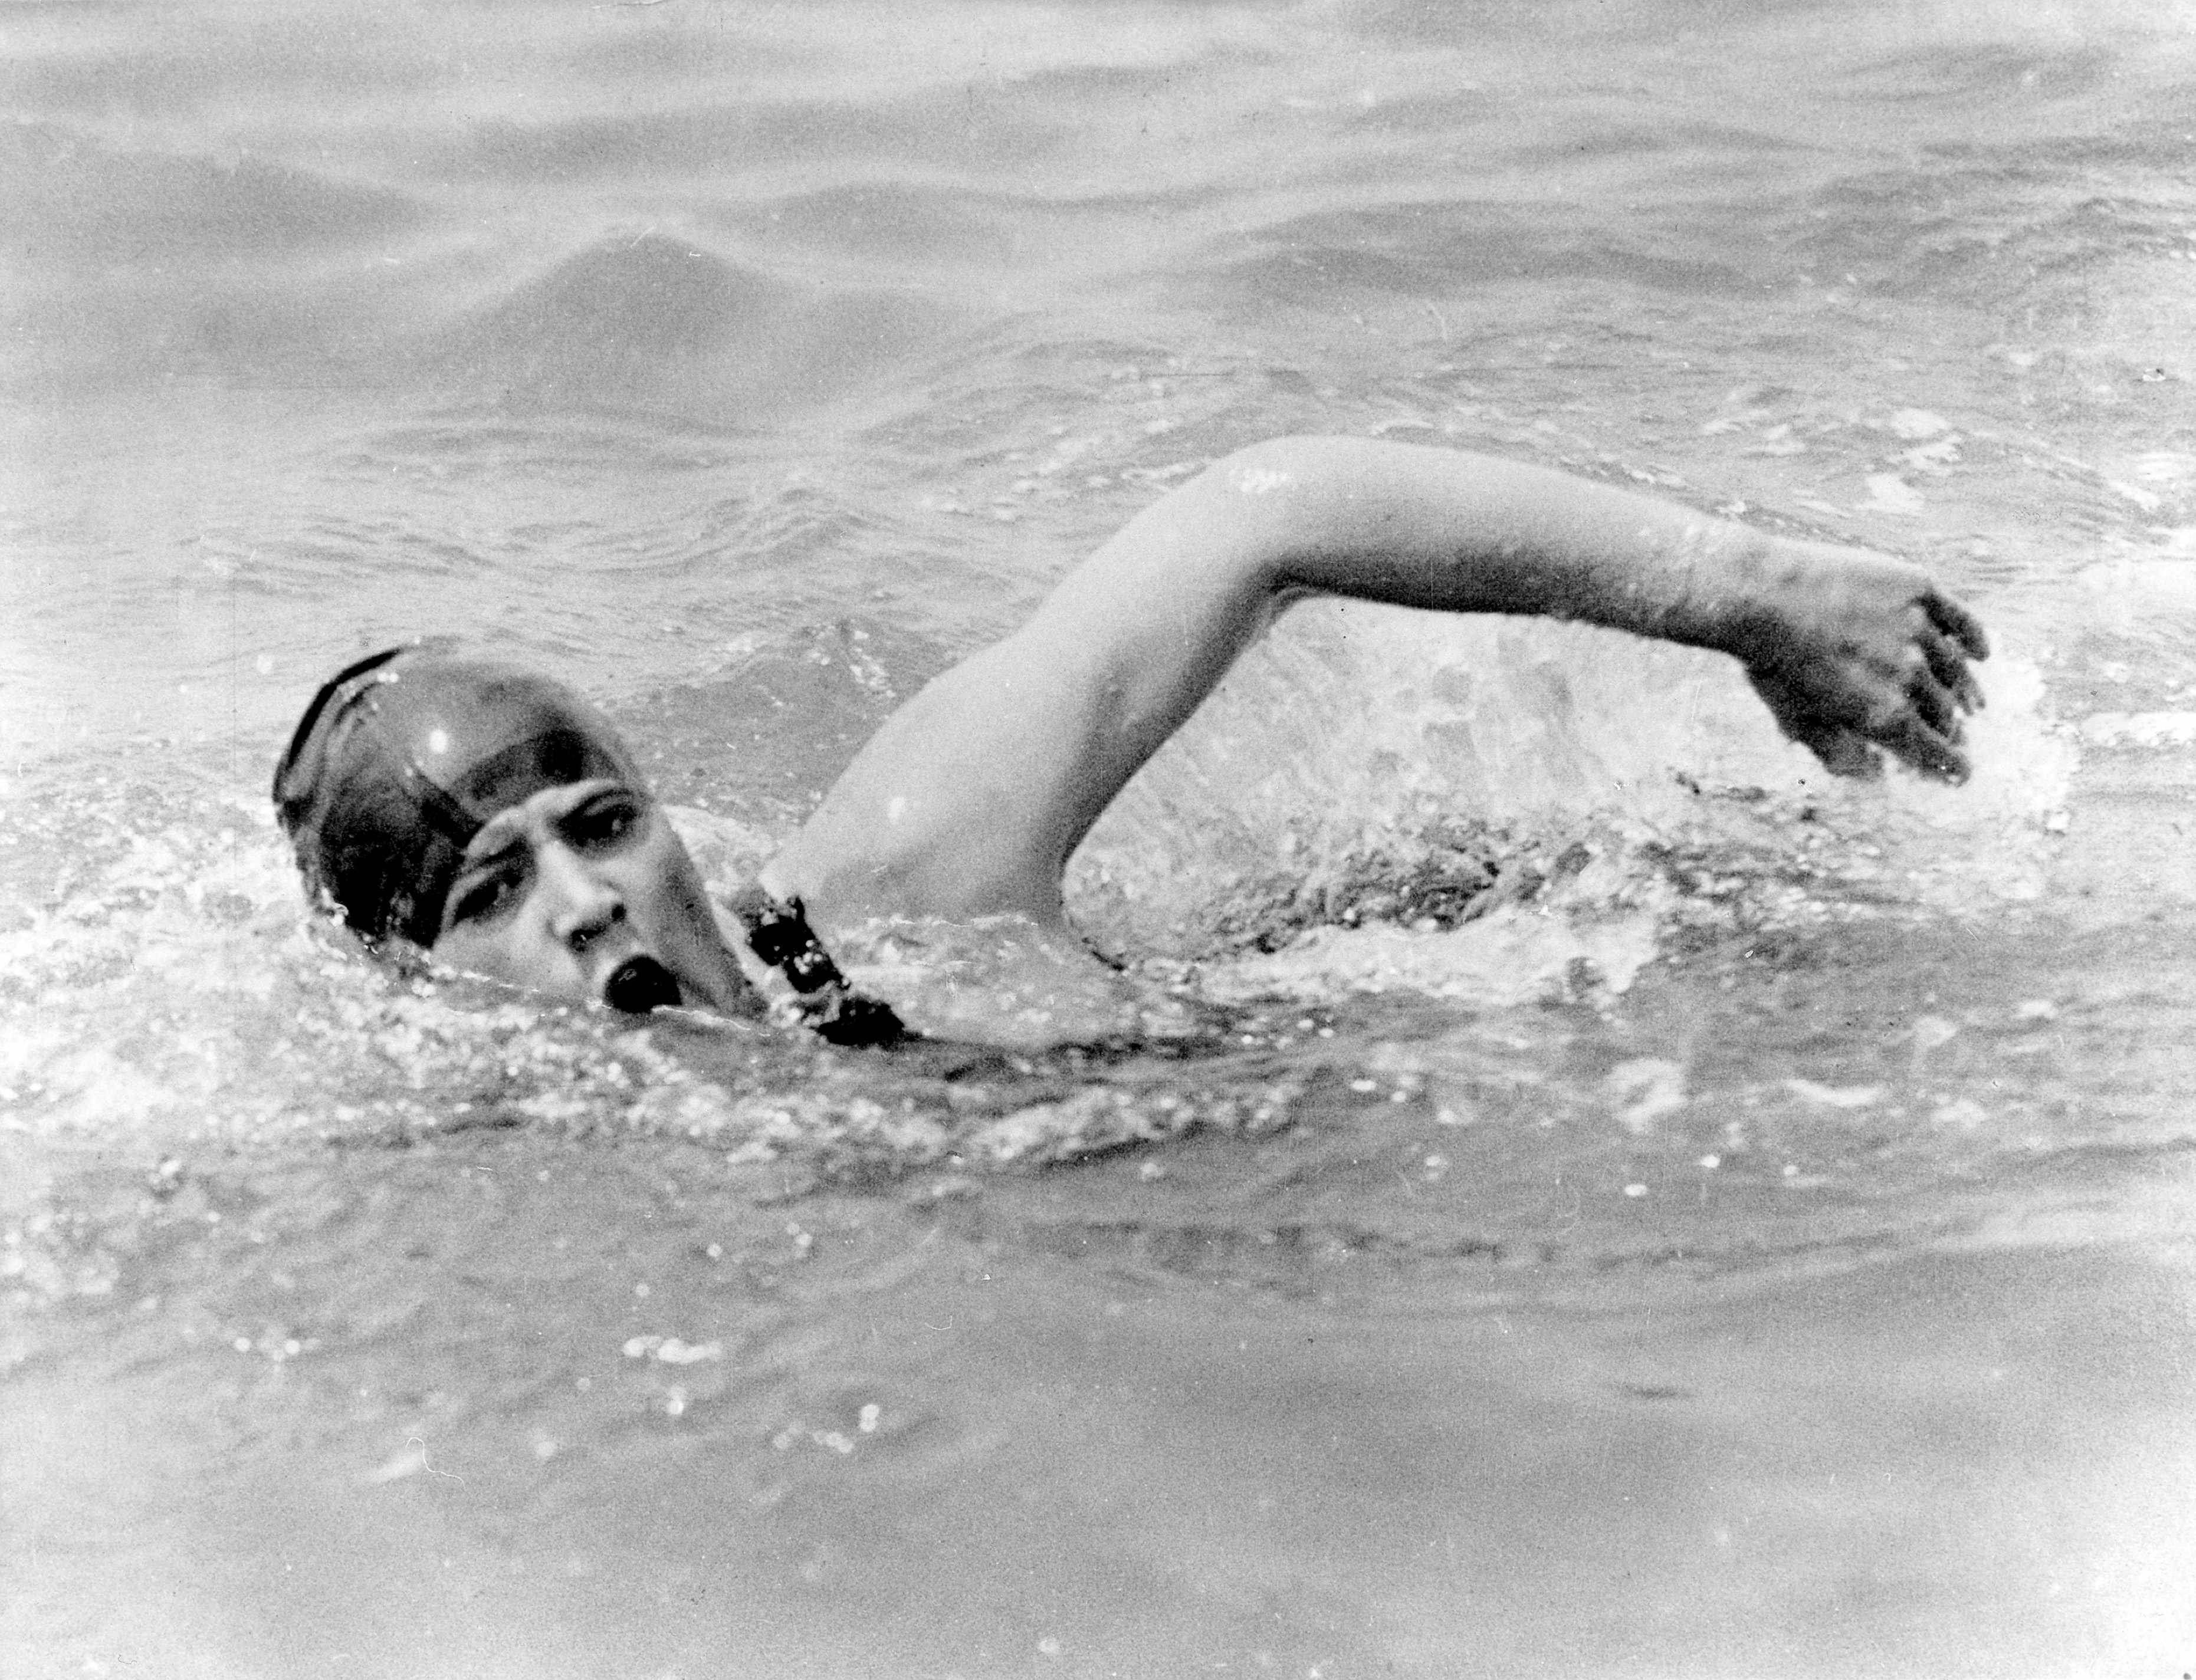 In 1926, 19-year-old New Yorker Gertrude Ederle made history by becoming the first woman to swim the English Channel – and in a faster time than the five men who had already achieved the feat. (Photo by ullstein bild/ullstein bild via Getty Images)